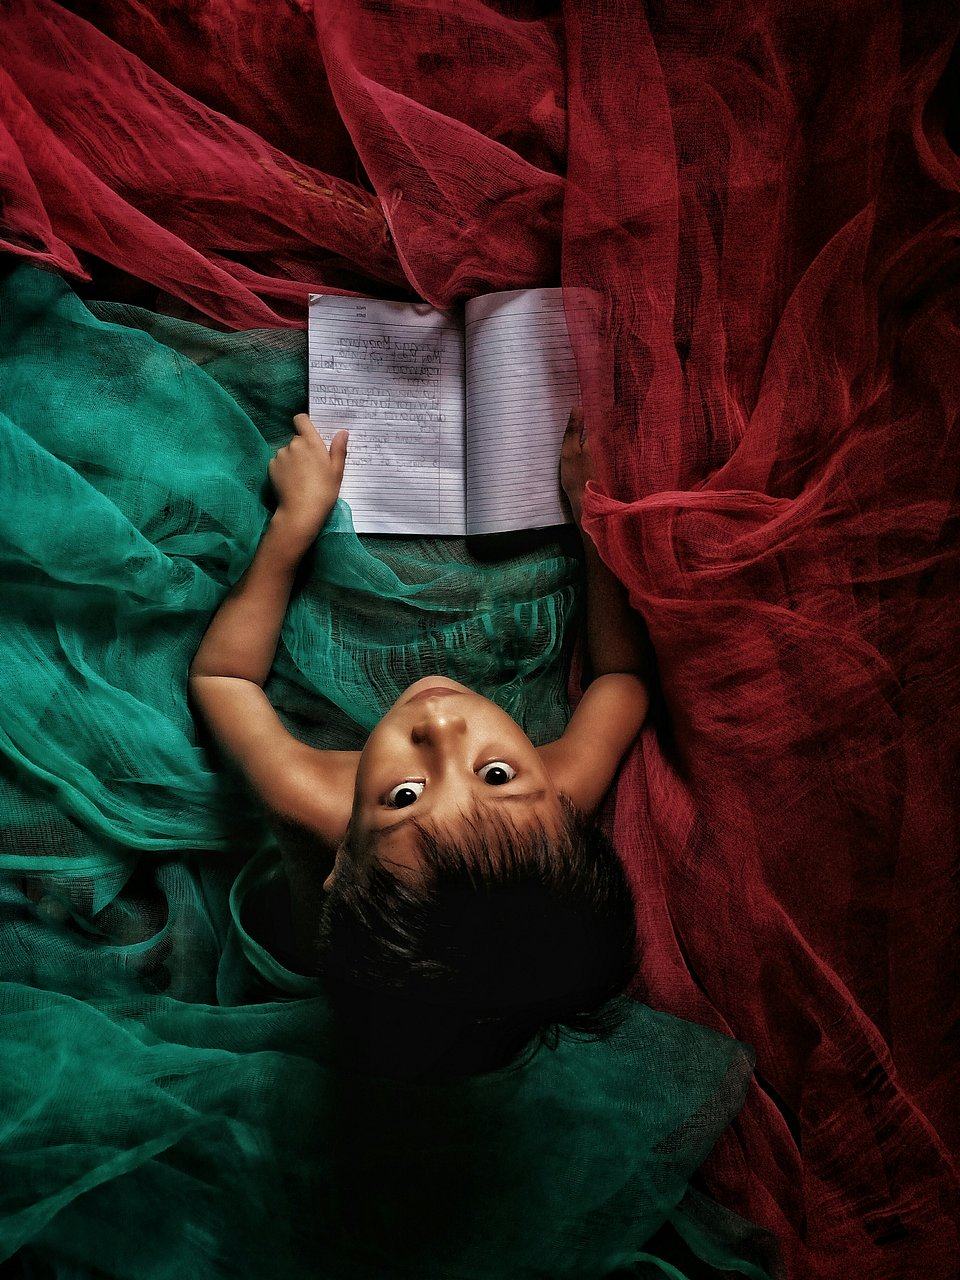 A little boy reading and writing in his journal, before he goes to sleep. (Robert Marrel Dela Vega/Agora)